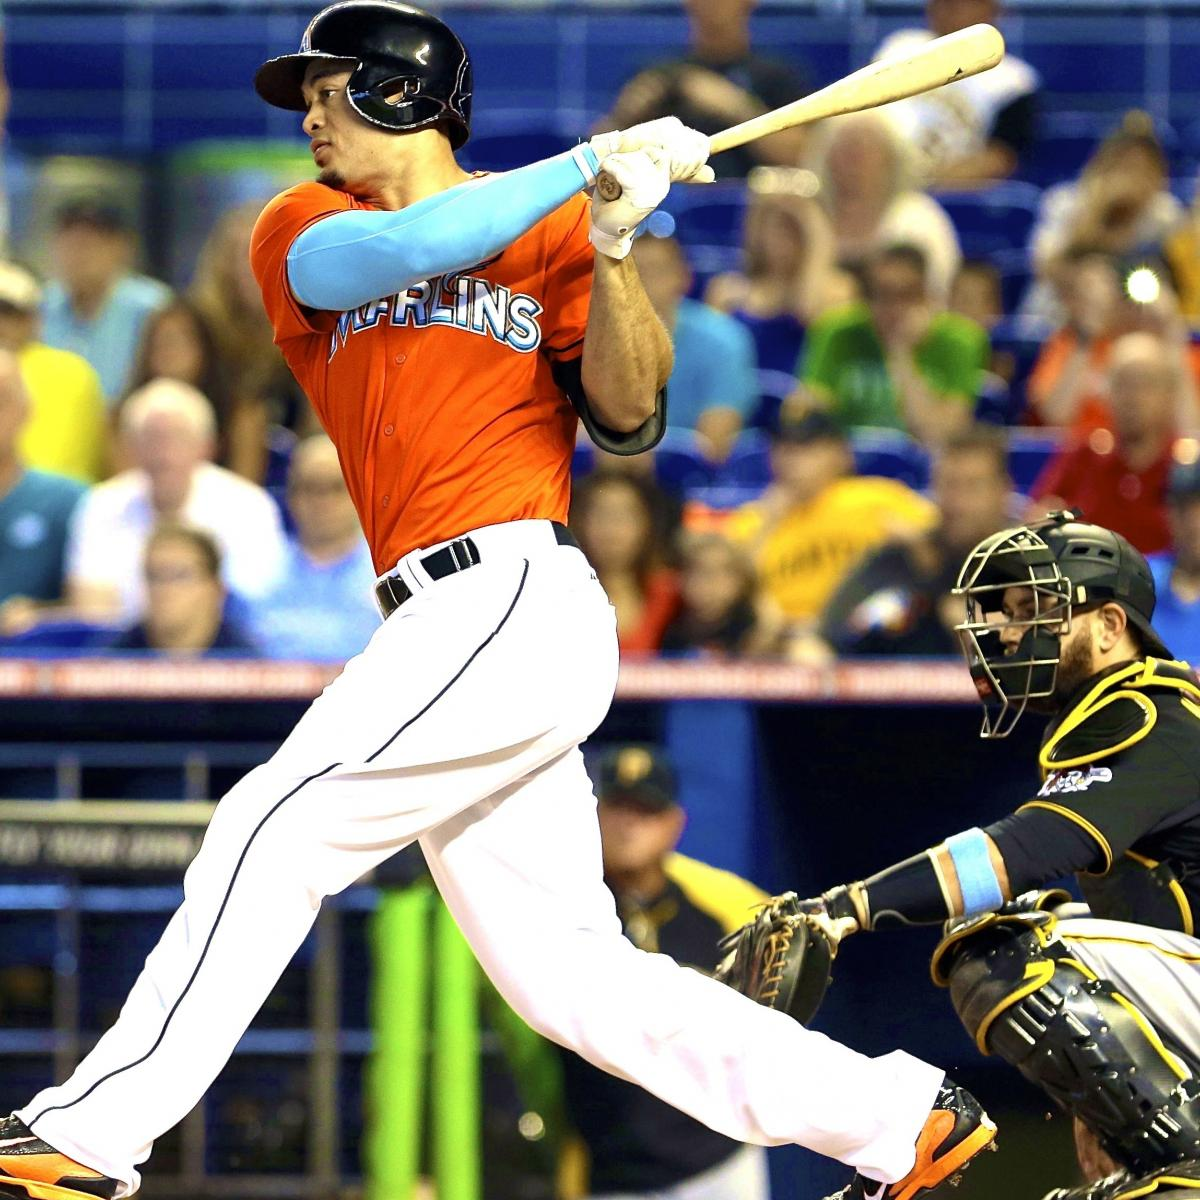 Home Run Derby 2014 Contestants: Grading Troy Tulowitzki